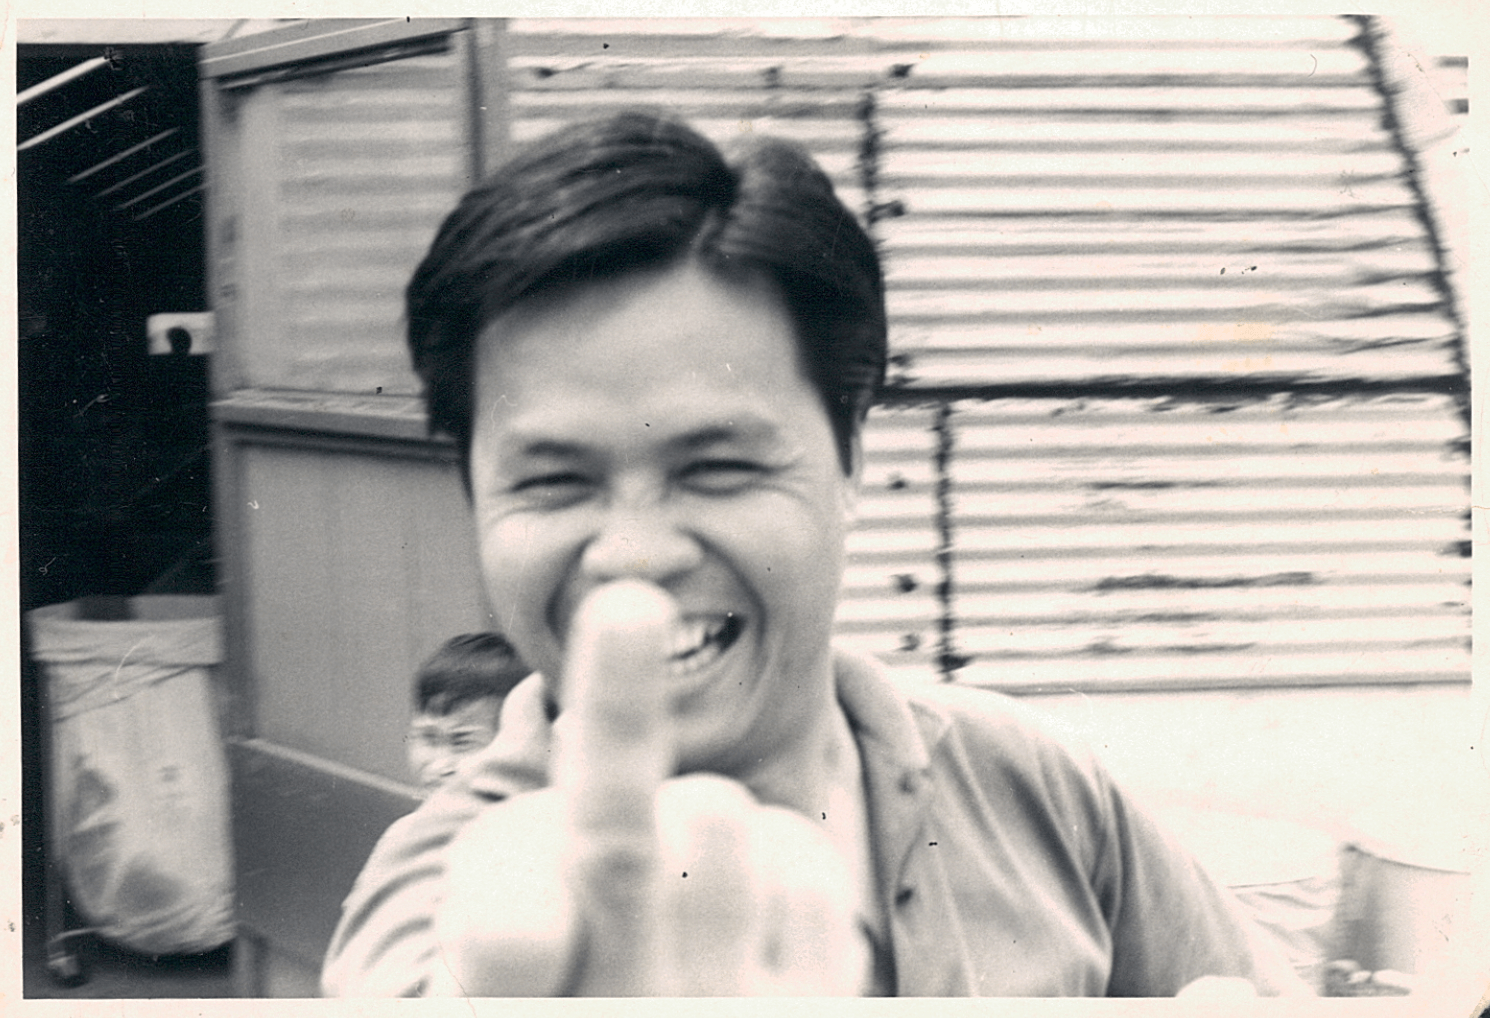 A young Asian man flipping off the camera, big grin on his face.